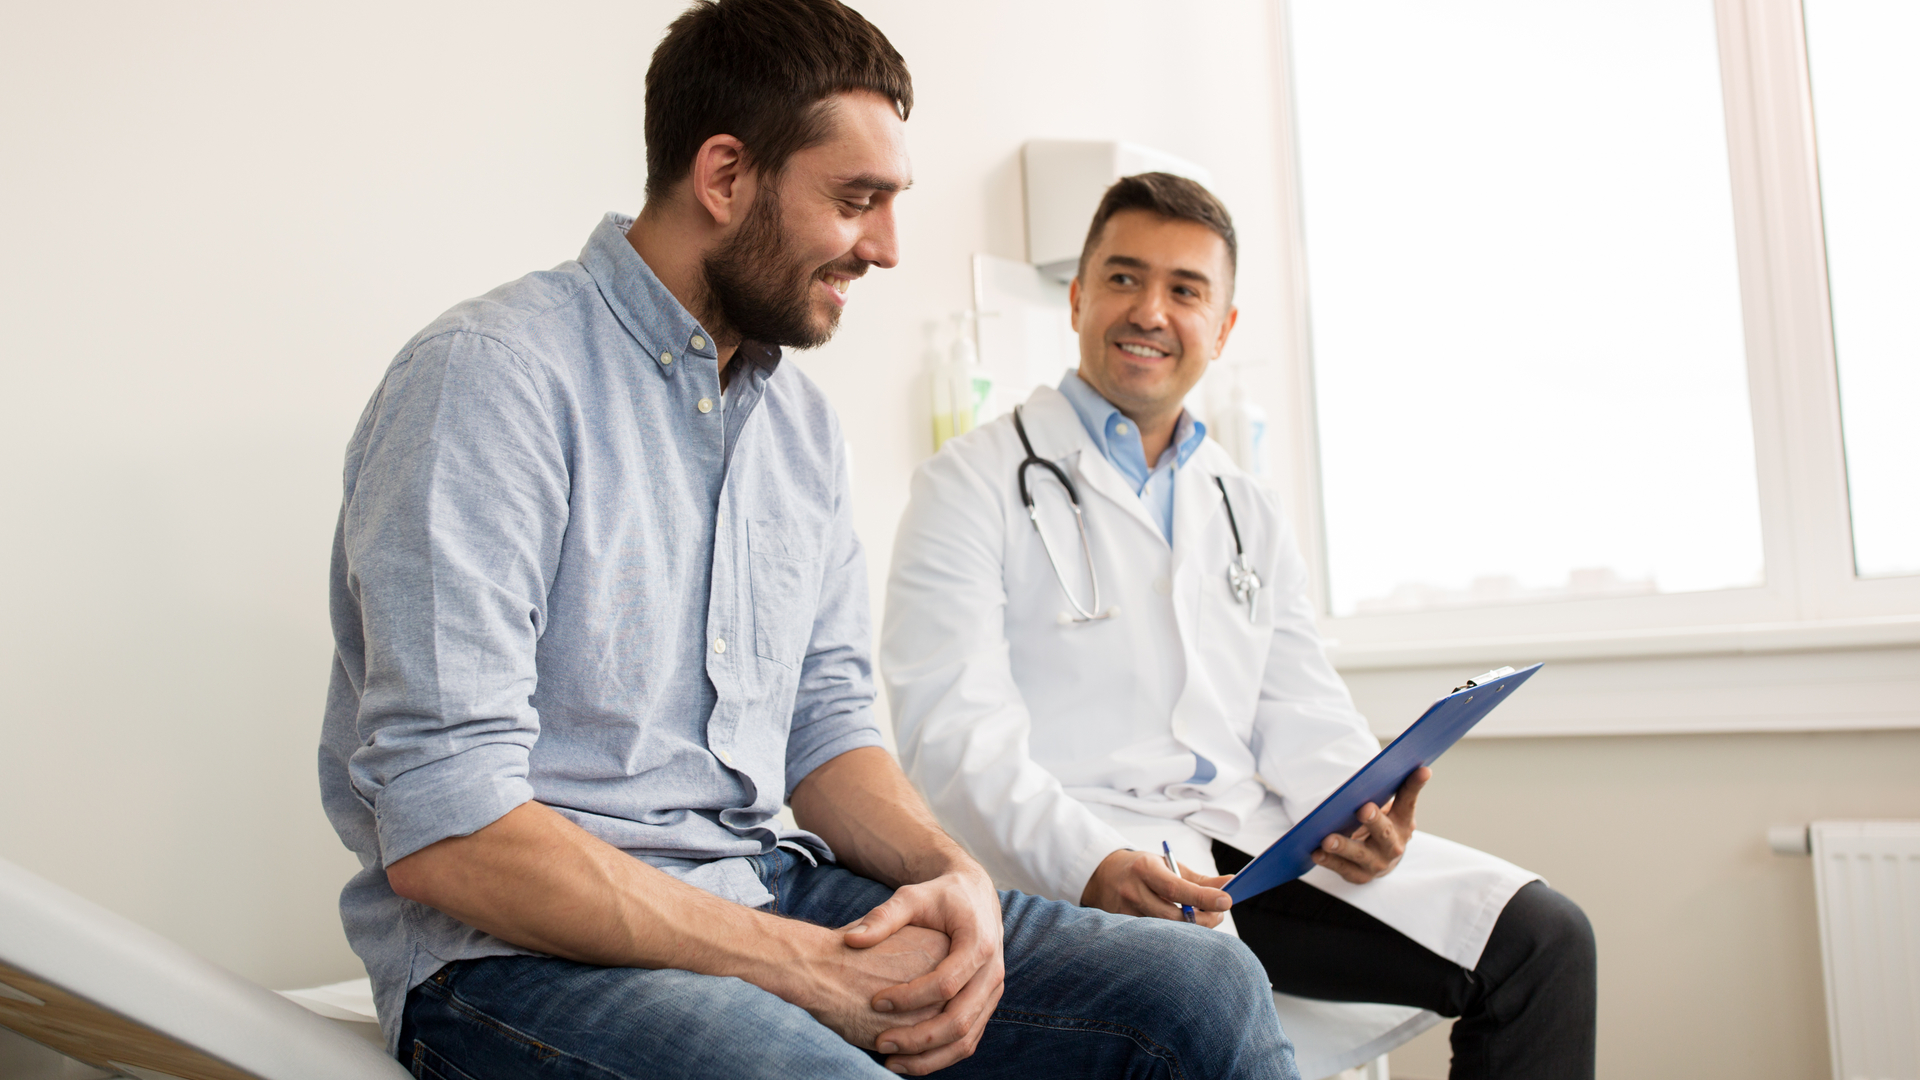 Image showing a man in the doctor's office discussing things with his doctor. Straight catheters should always be discussed with a physician or urologist prior to use.